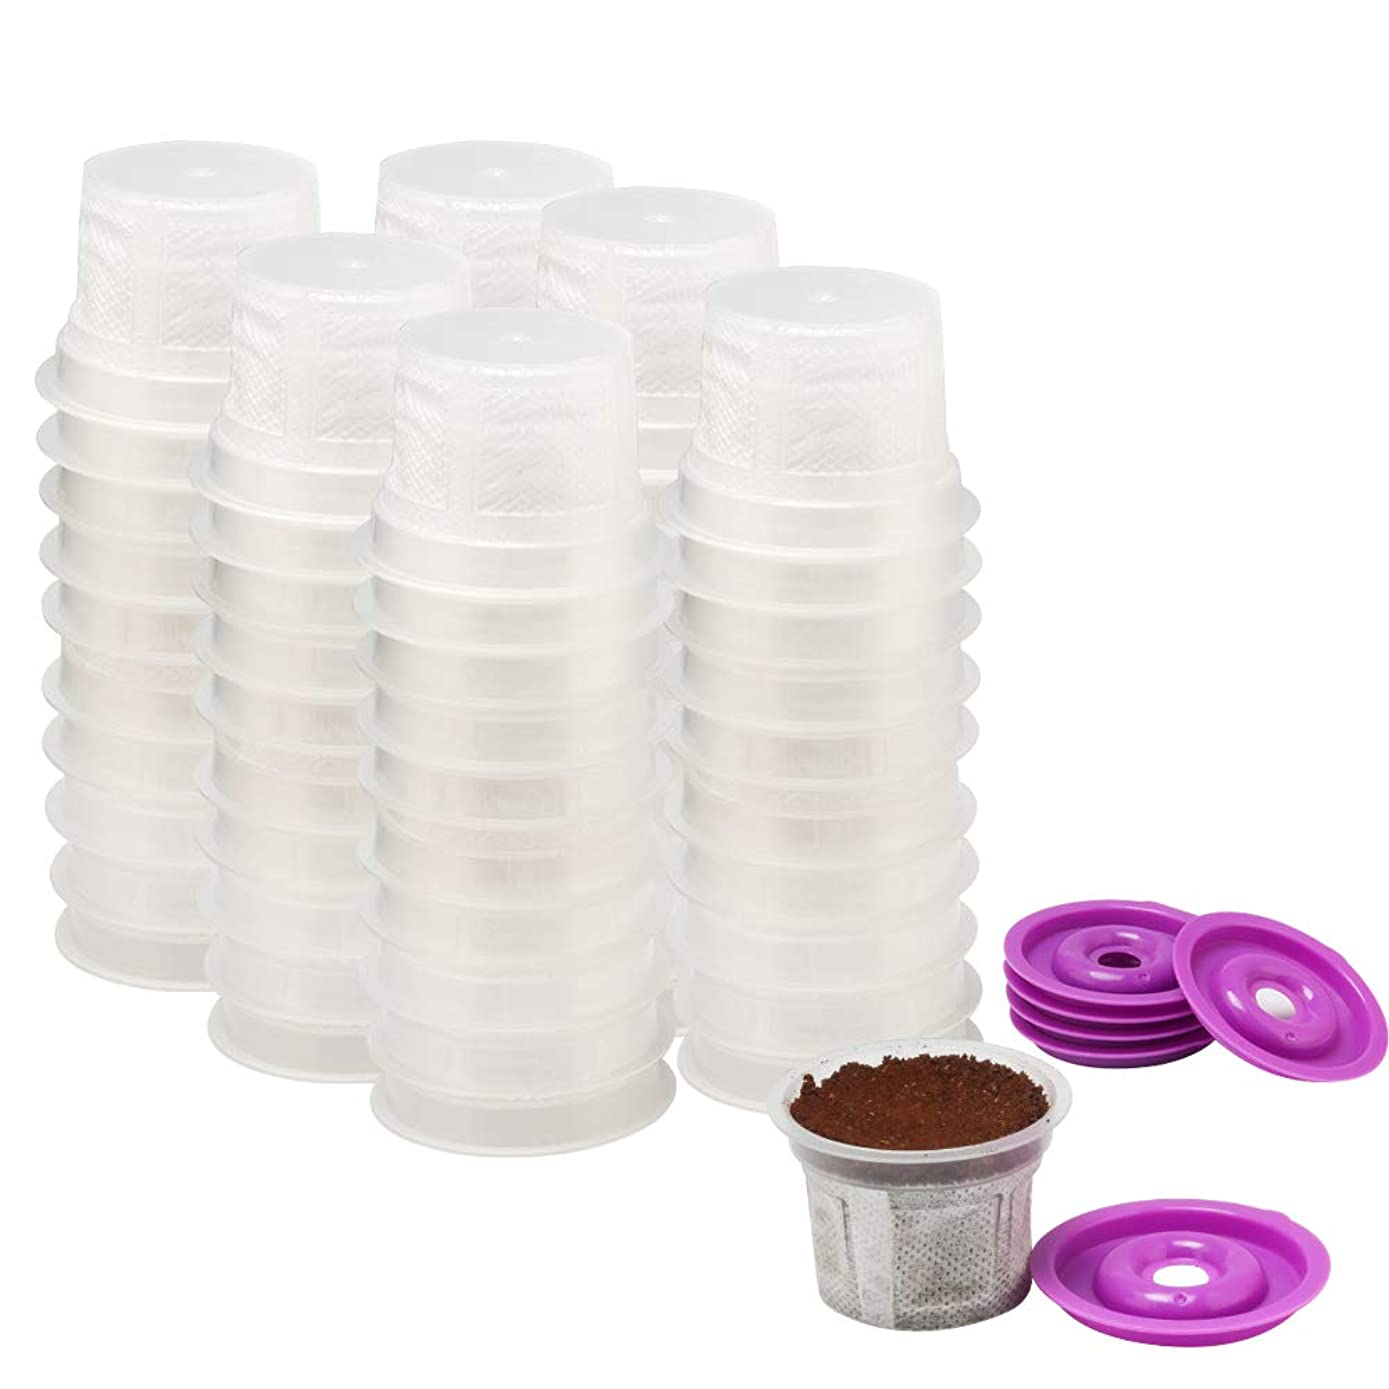 Disposable Cups for Use in Keurig Brewers - Simple Cups - 100 Cups, 10 Lids - Use Your Own Coffee in K-cups